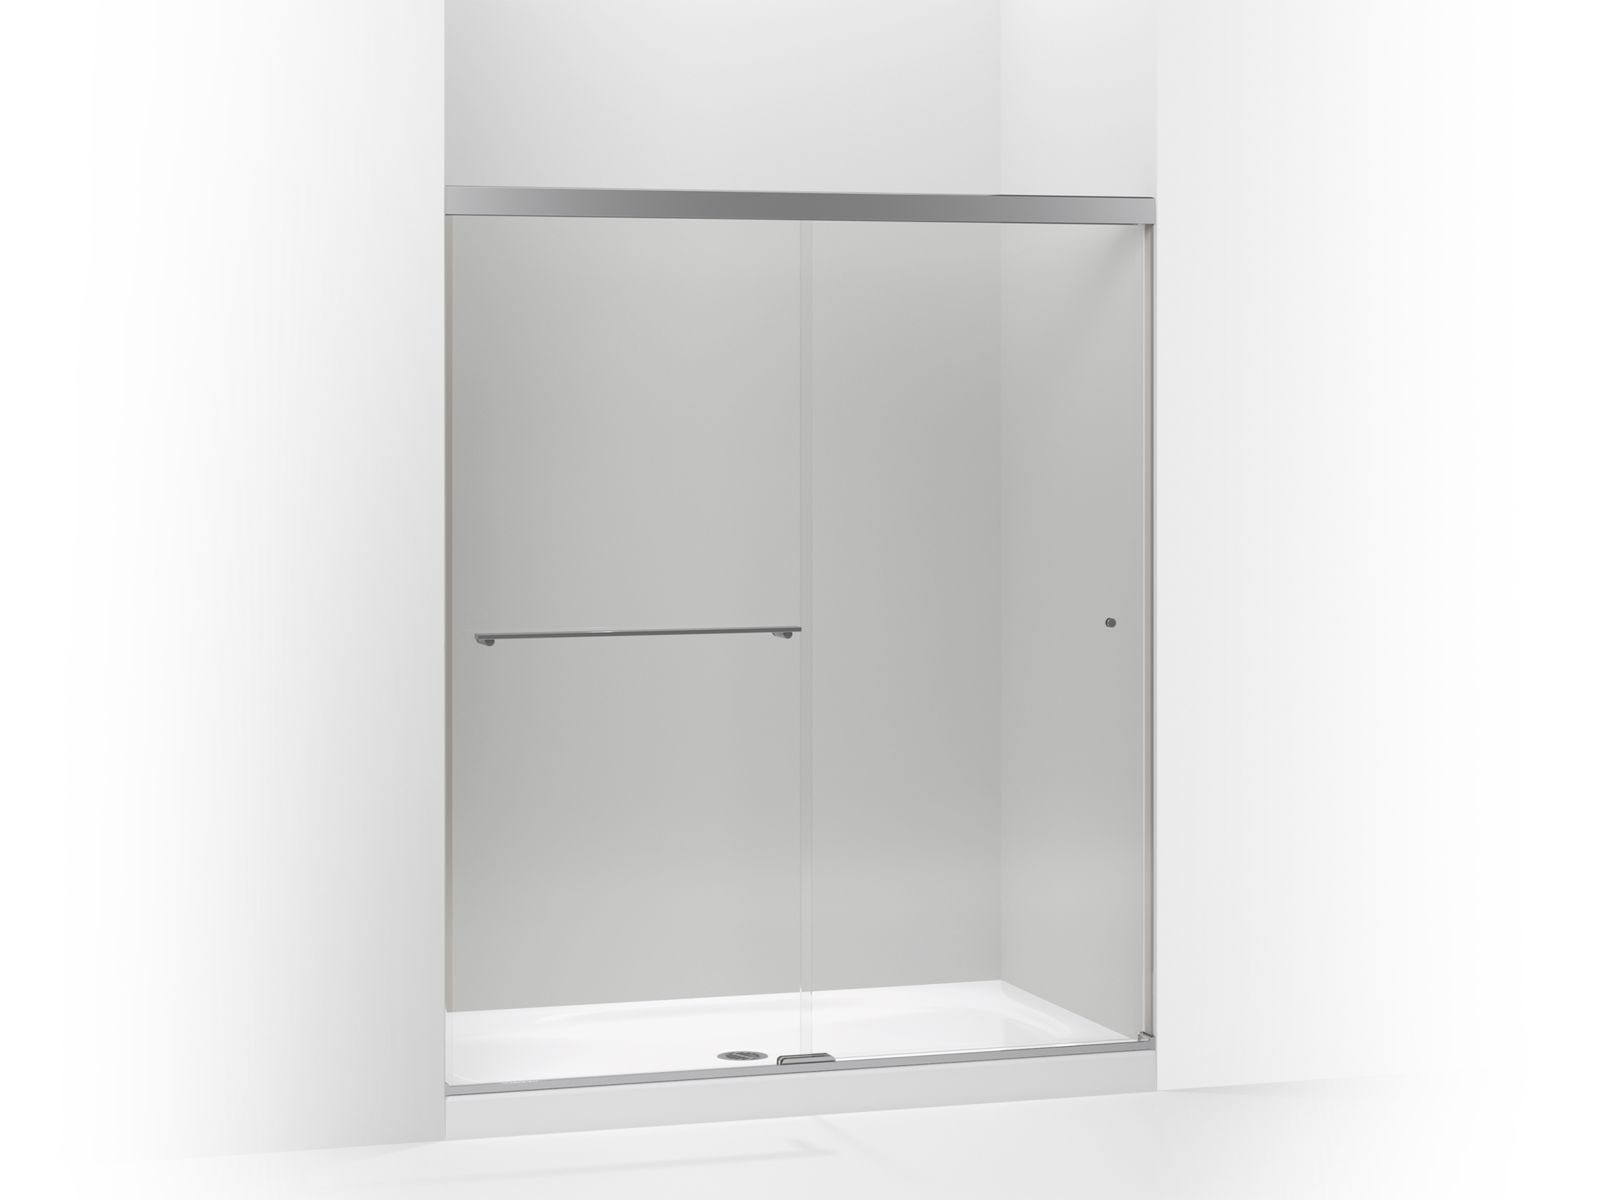 K 707206 L Revel Frameless Sliding Shower Door Kohler